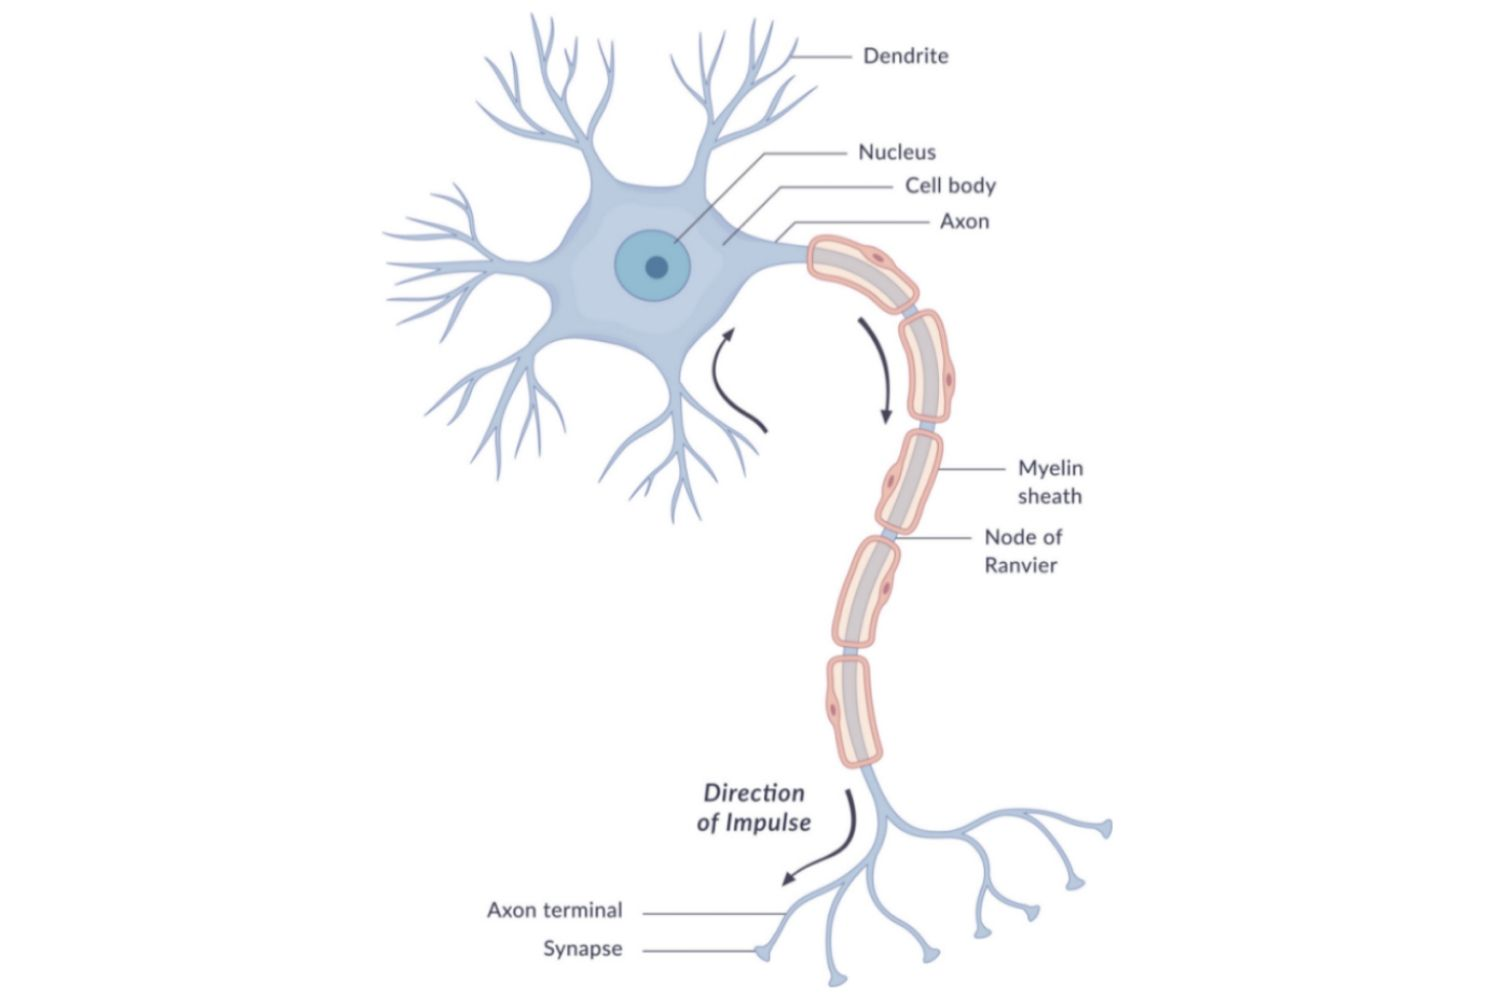 hight resolution of diagram of a neuron